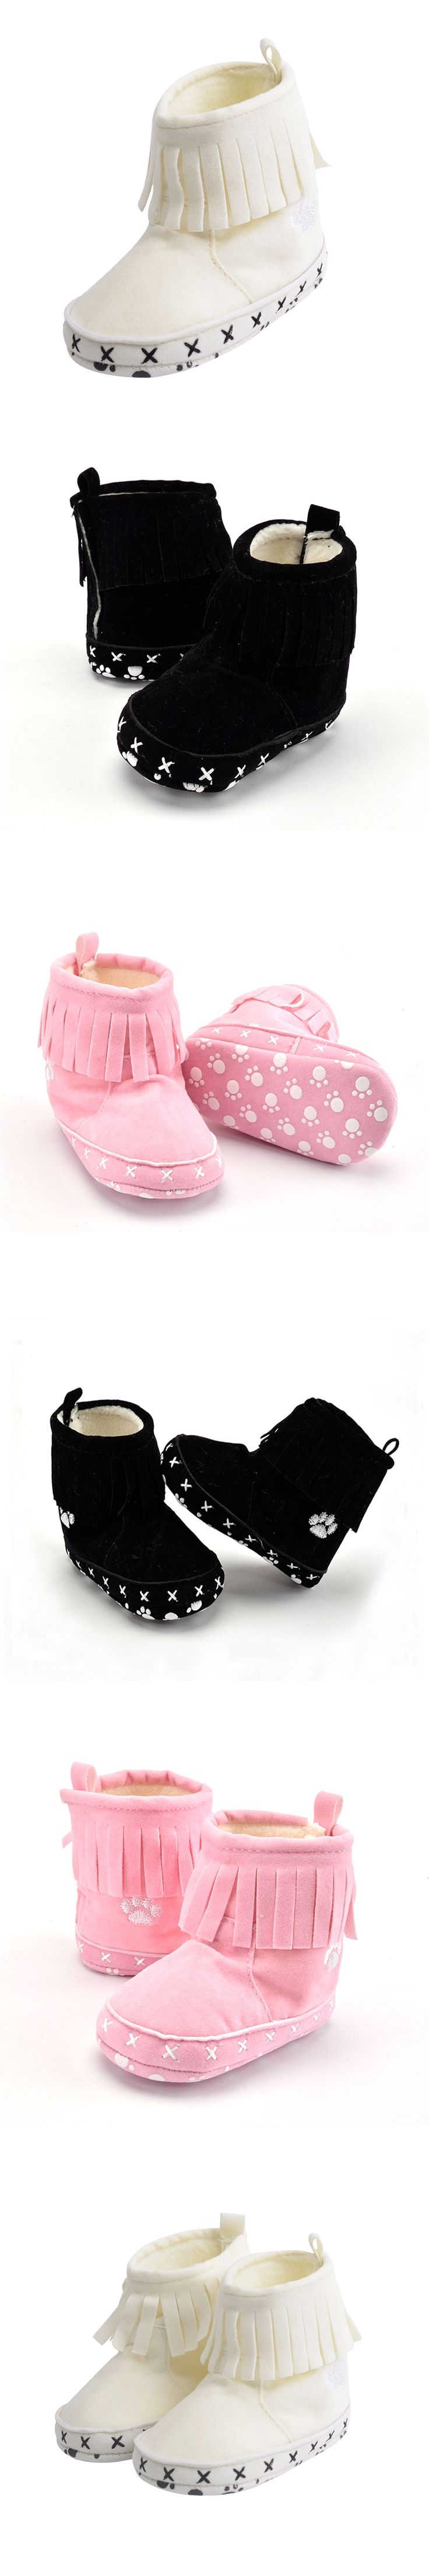 Baby Toddler Girls Boys Winter Warm Snow Boot Tassels Trimmed Moccasin Boots Outdoor Baby Boy Girl Infant Shoes First Step